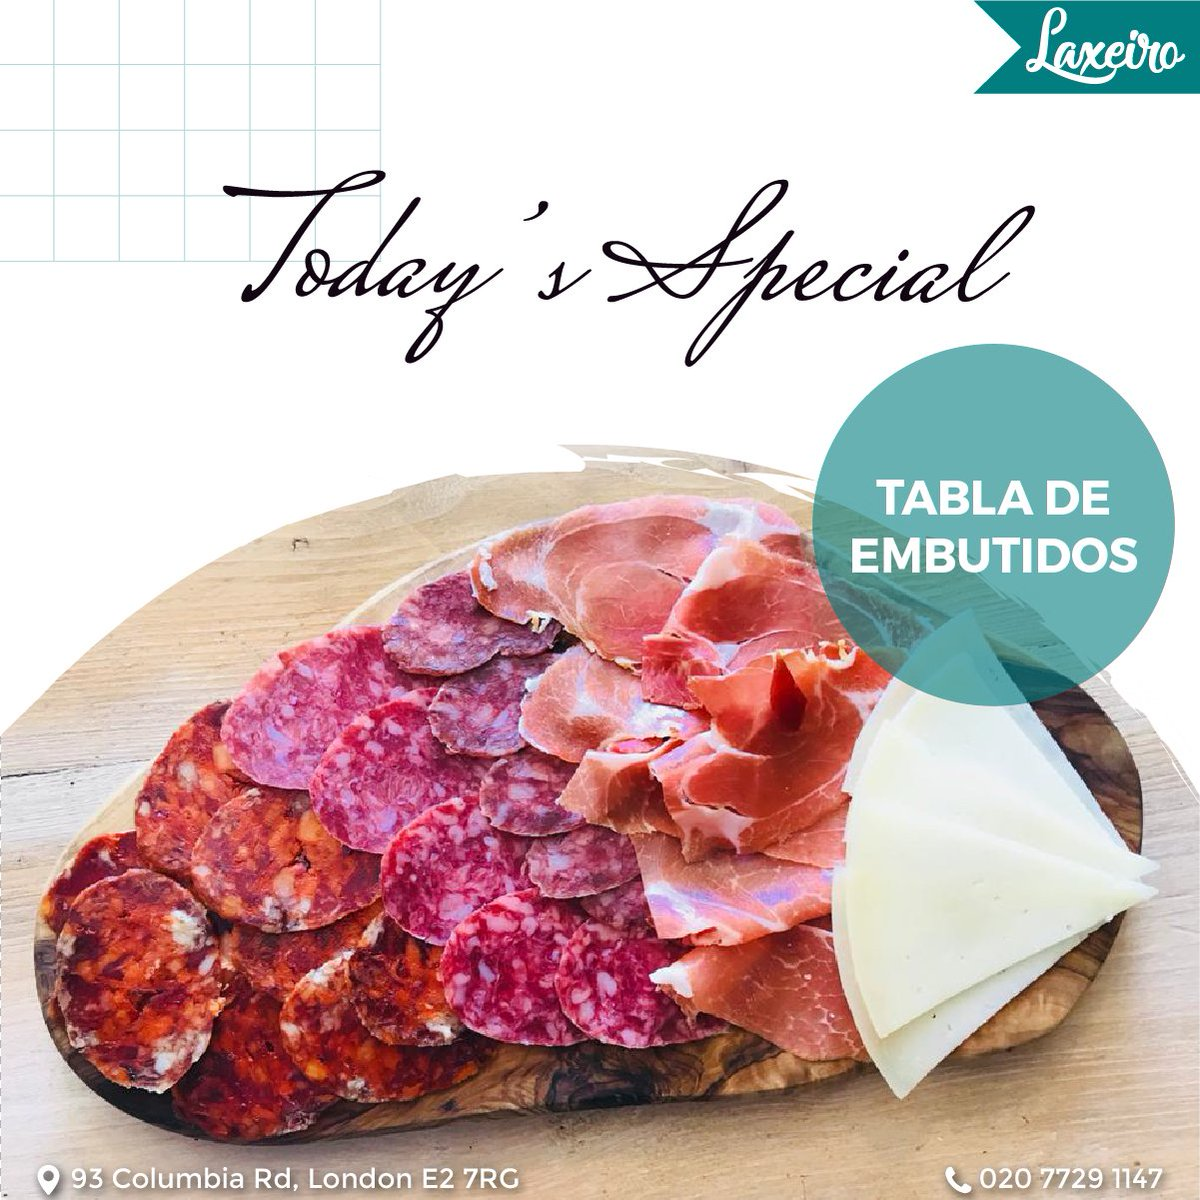 No better way to start your week with our delicacies from Spanish, Try our TABLE DE EMBUTIDOS. . Follow @laxeiro_restaurant  for more pictures . . #table  #de  #embutidos  #yummy  #adore  #morning  #goodvibes  #week  #start  #laxeirolondon  #familyphotography  #columbiaroadflowermarket